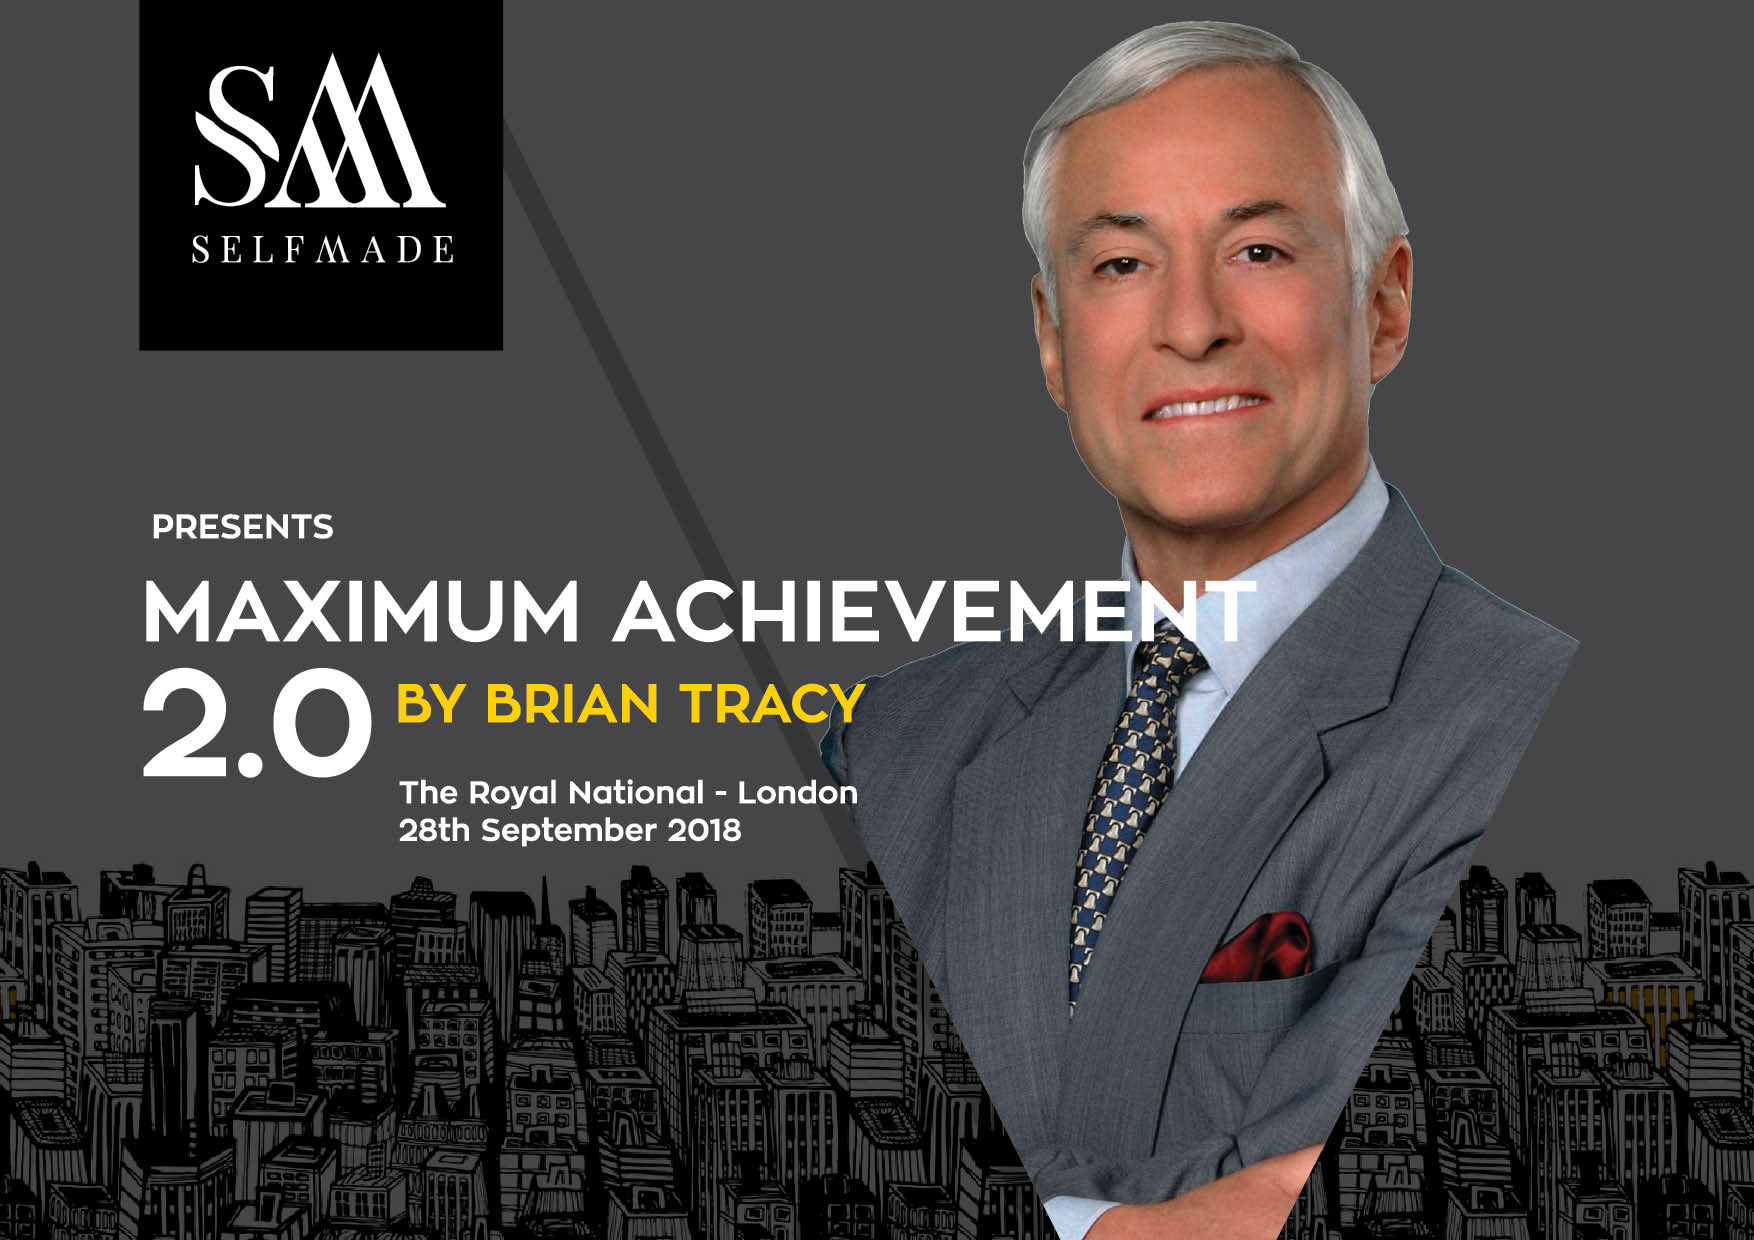 Maximum Achievement 2.0 - I will be speaking at the Brian Tracy Maximum Achievement 2.0Join me and a host of other amazing speakers at The Royal National, London on the 28th of September! Get more details here